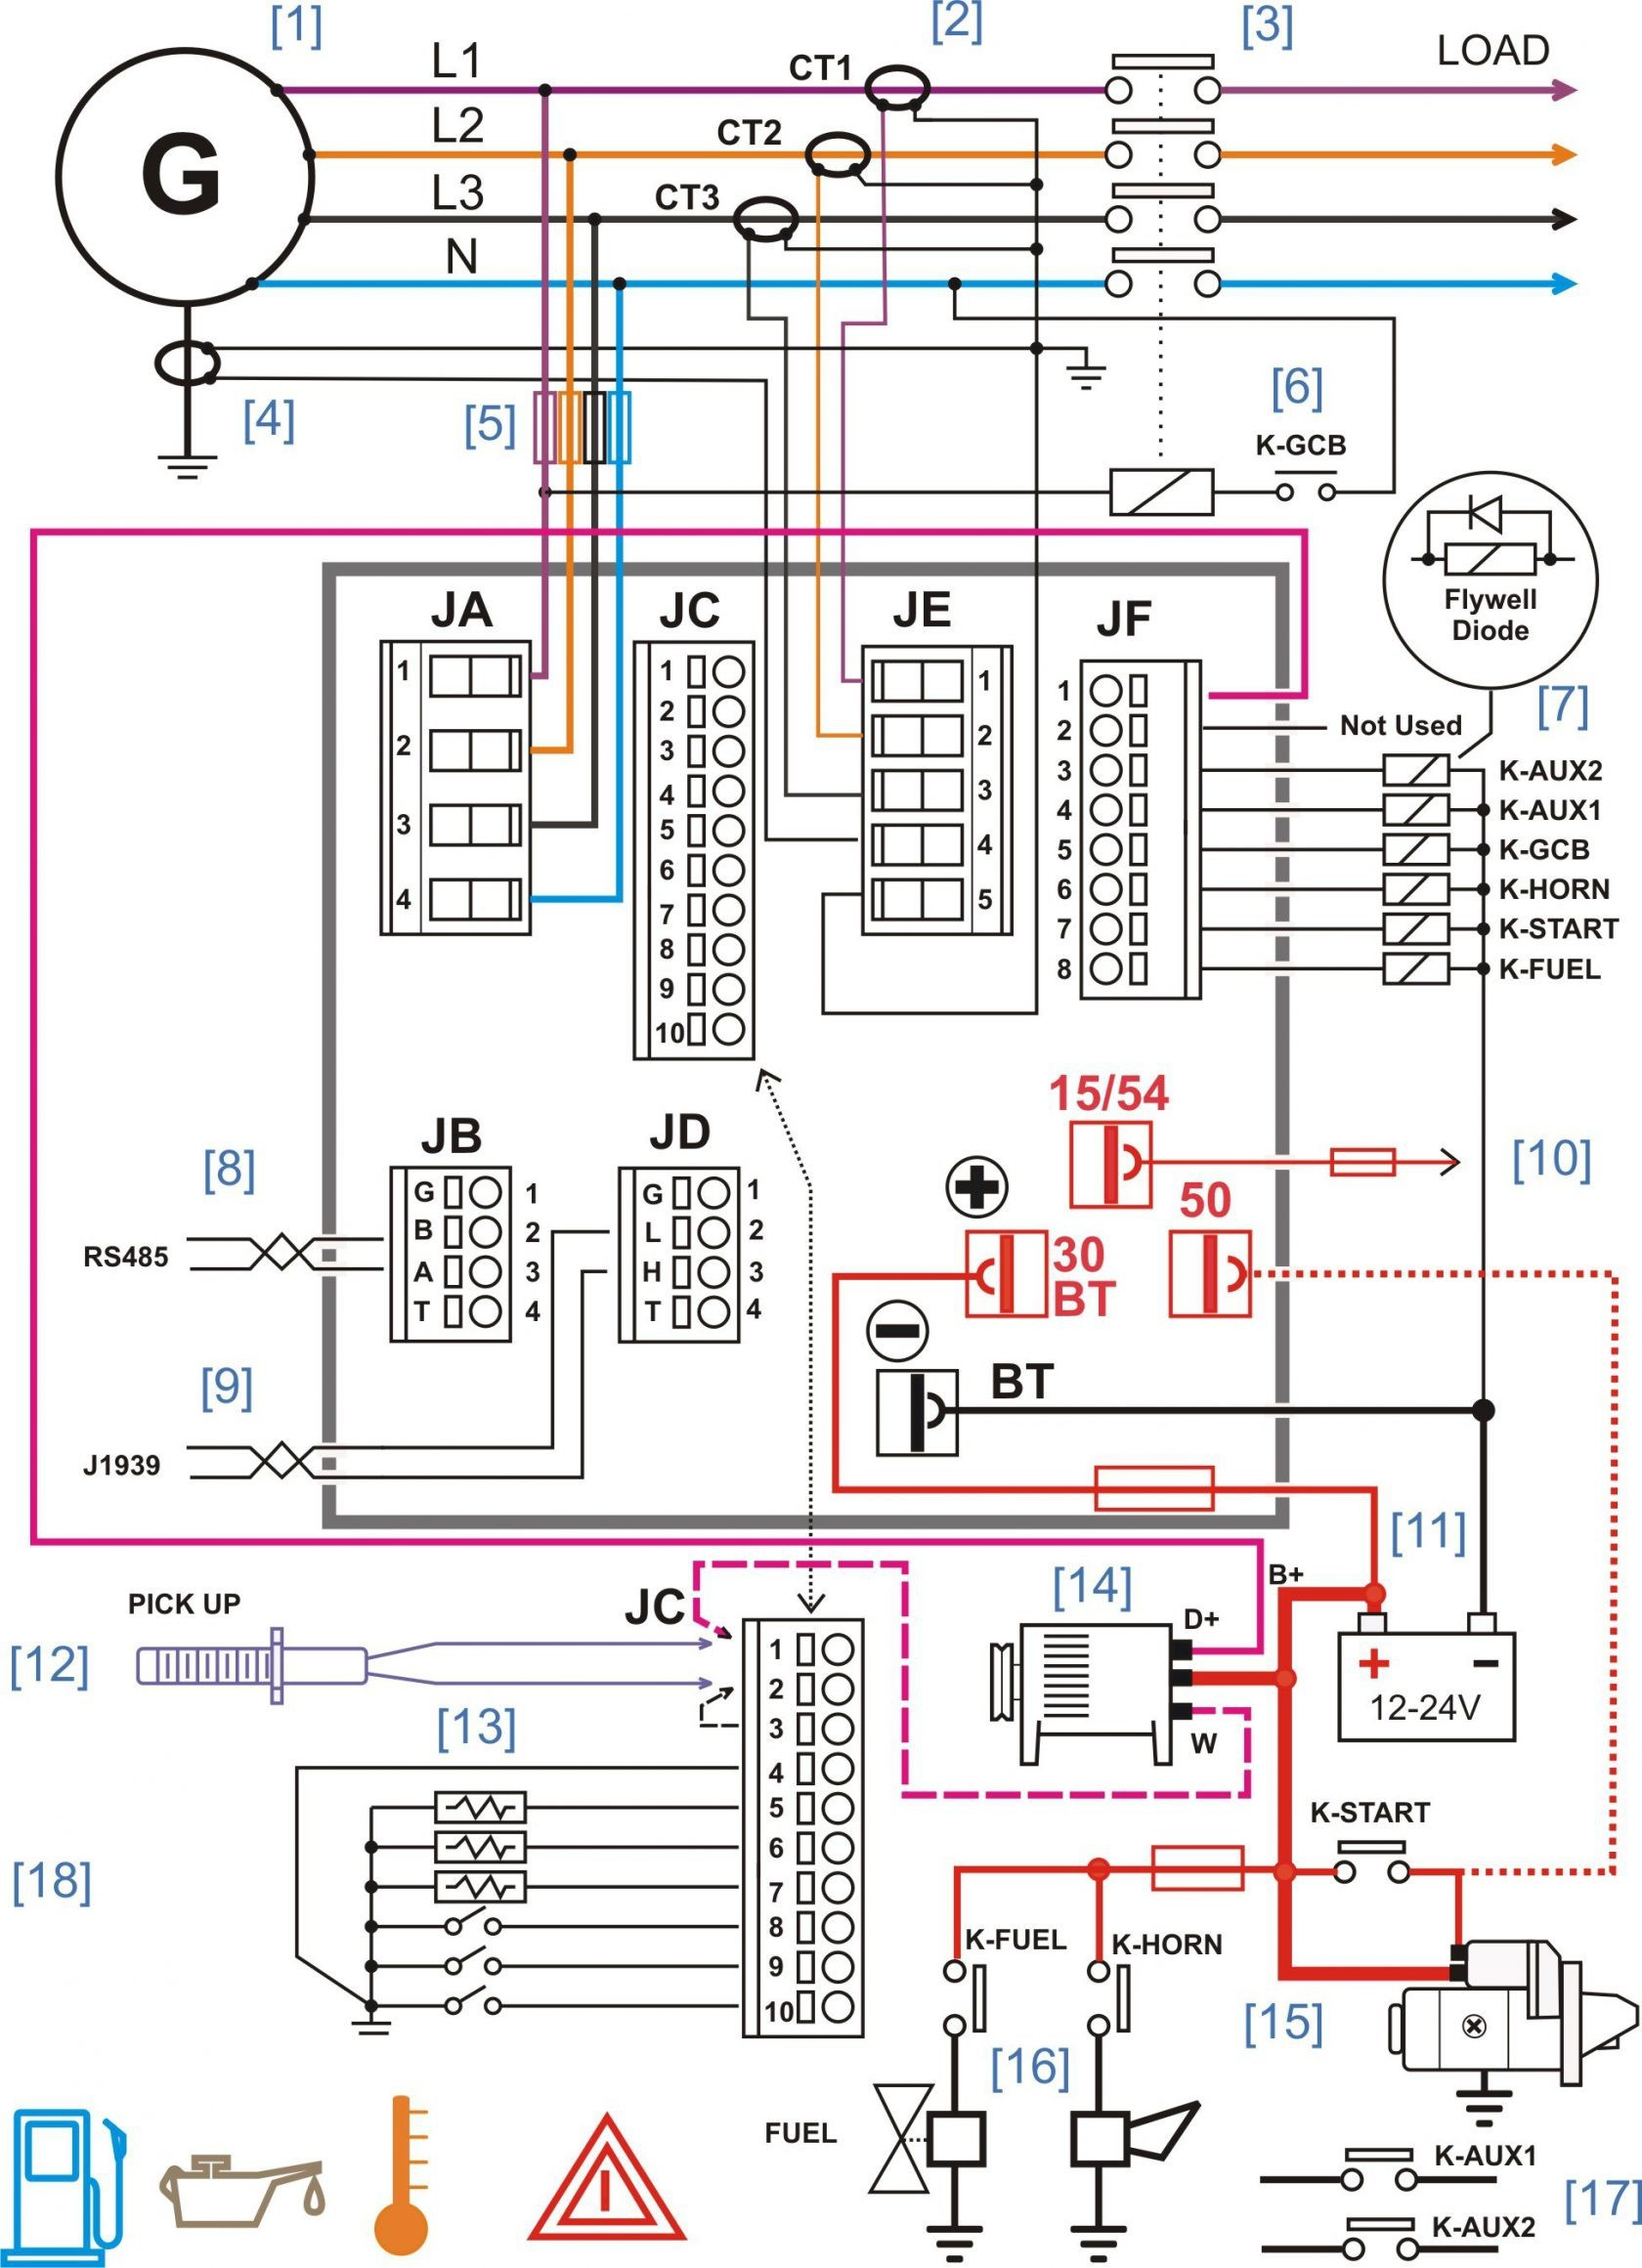 hight resolution of free wiring diagram weebly wiring library free wiring diagrams weebly audi q7